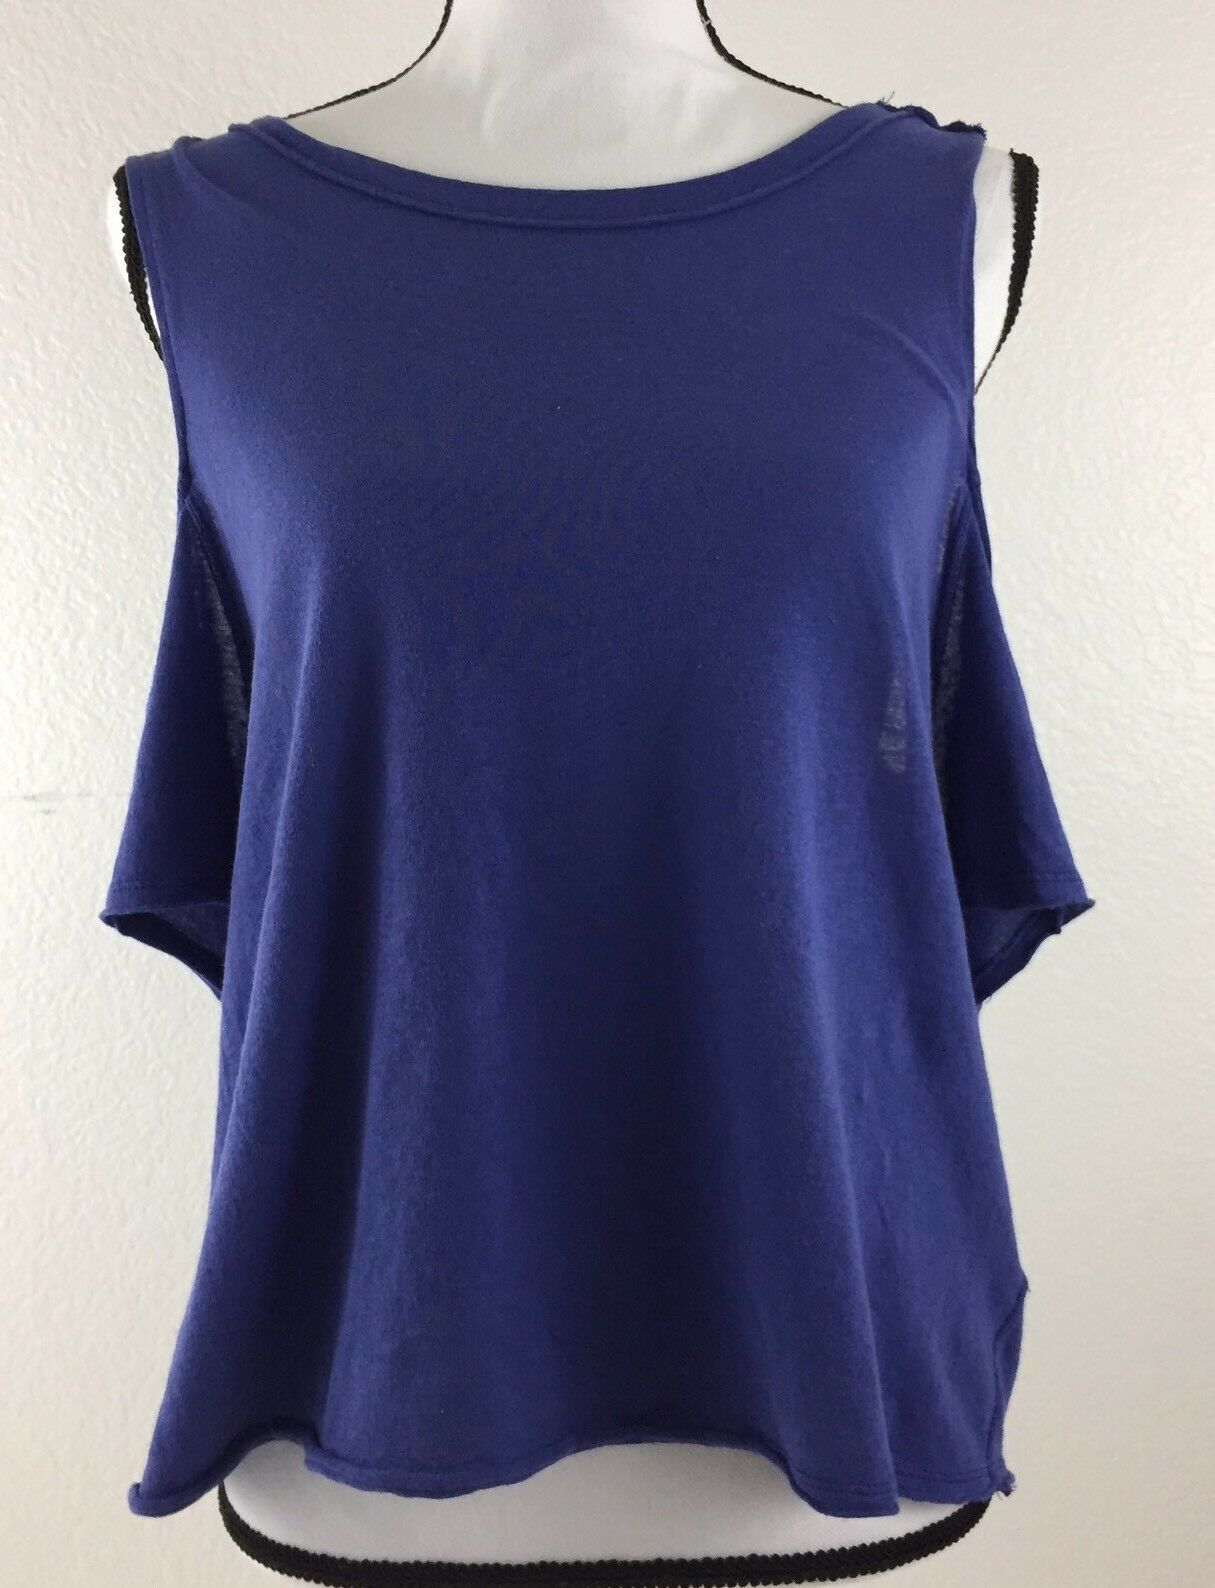 Free People Womens Size Medium Purple Taurus We The Free Cold Shouler Top. M4